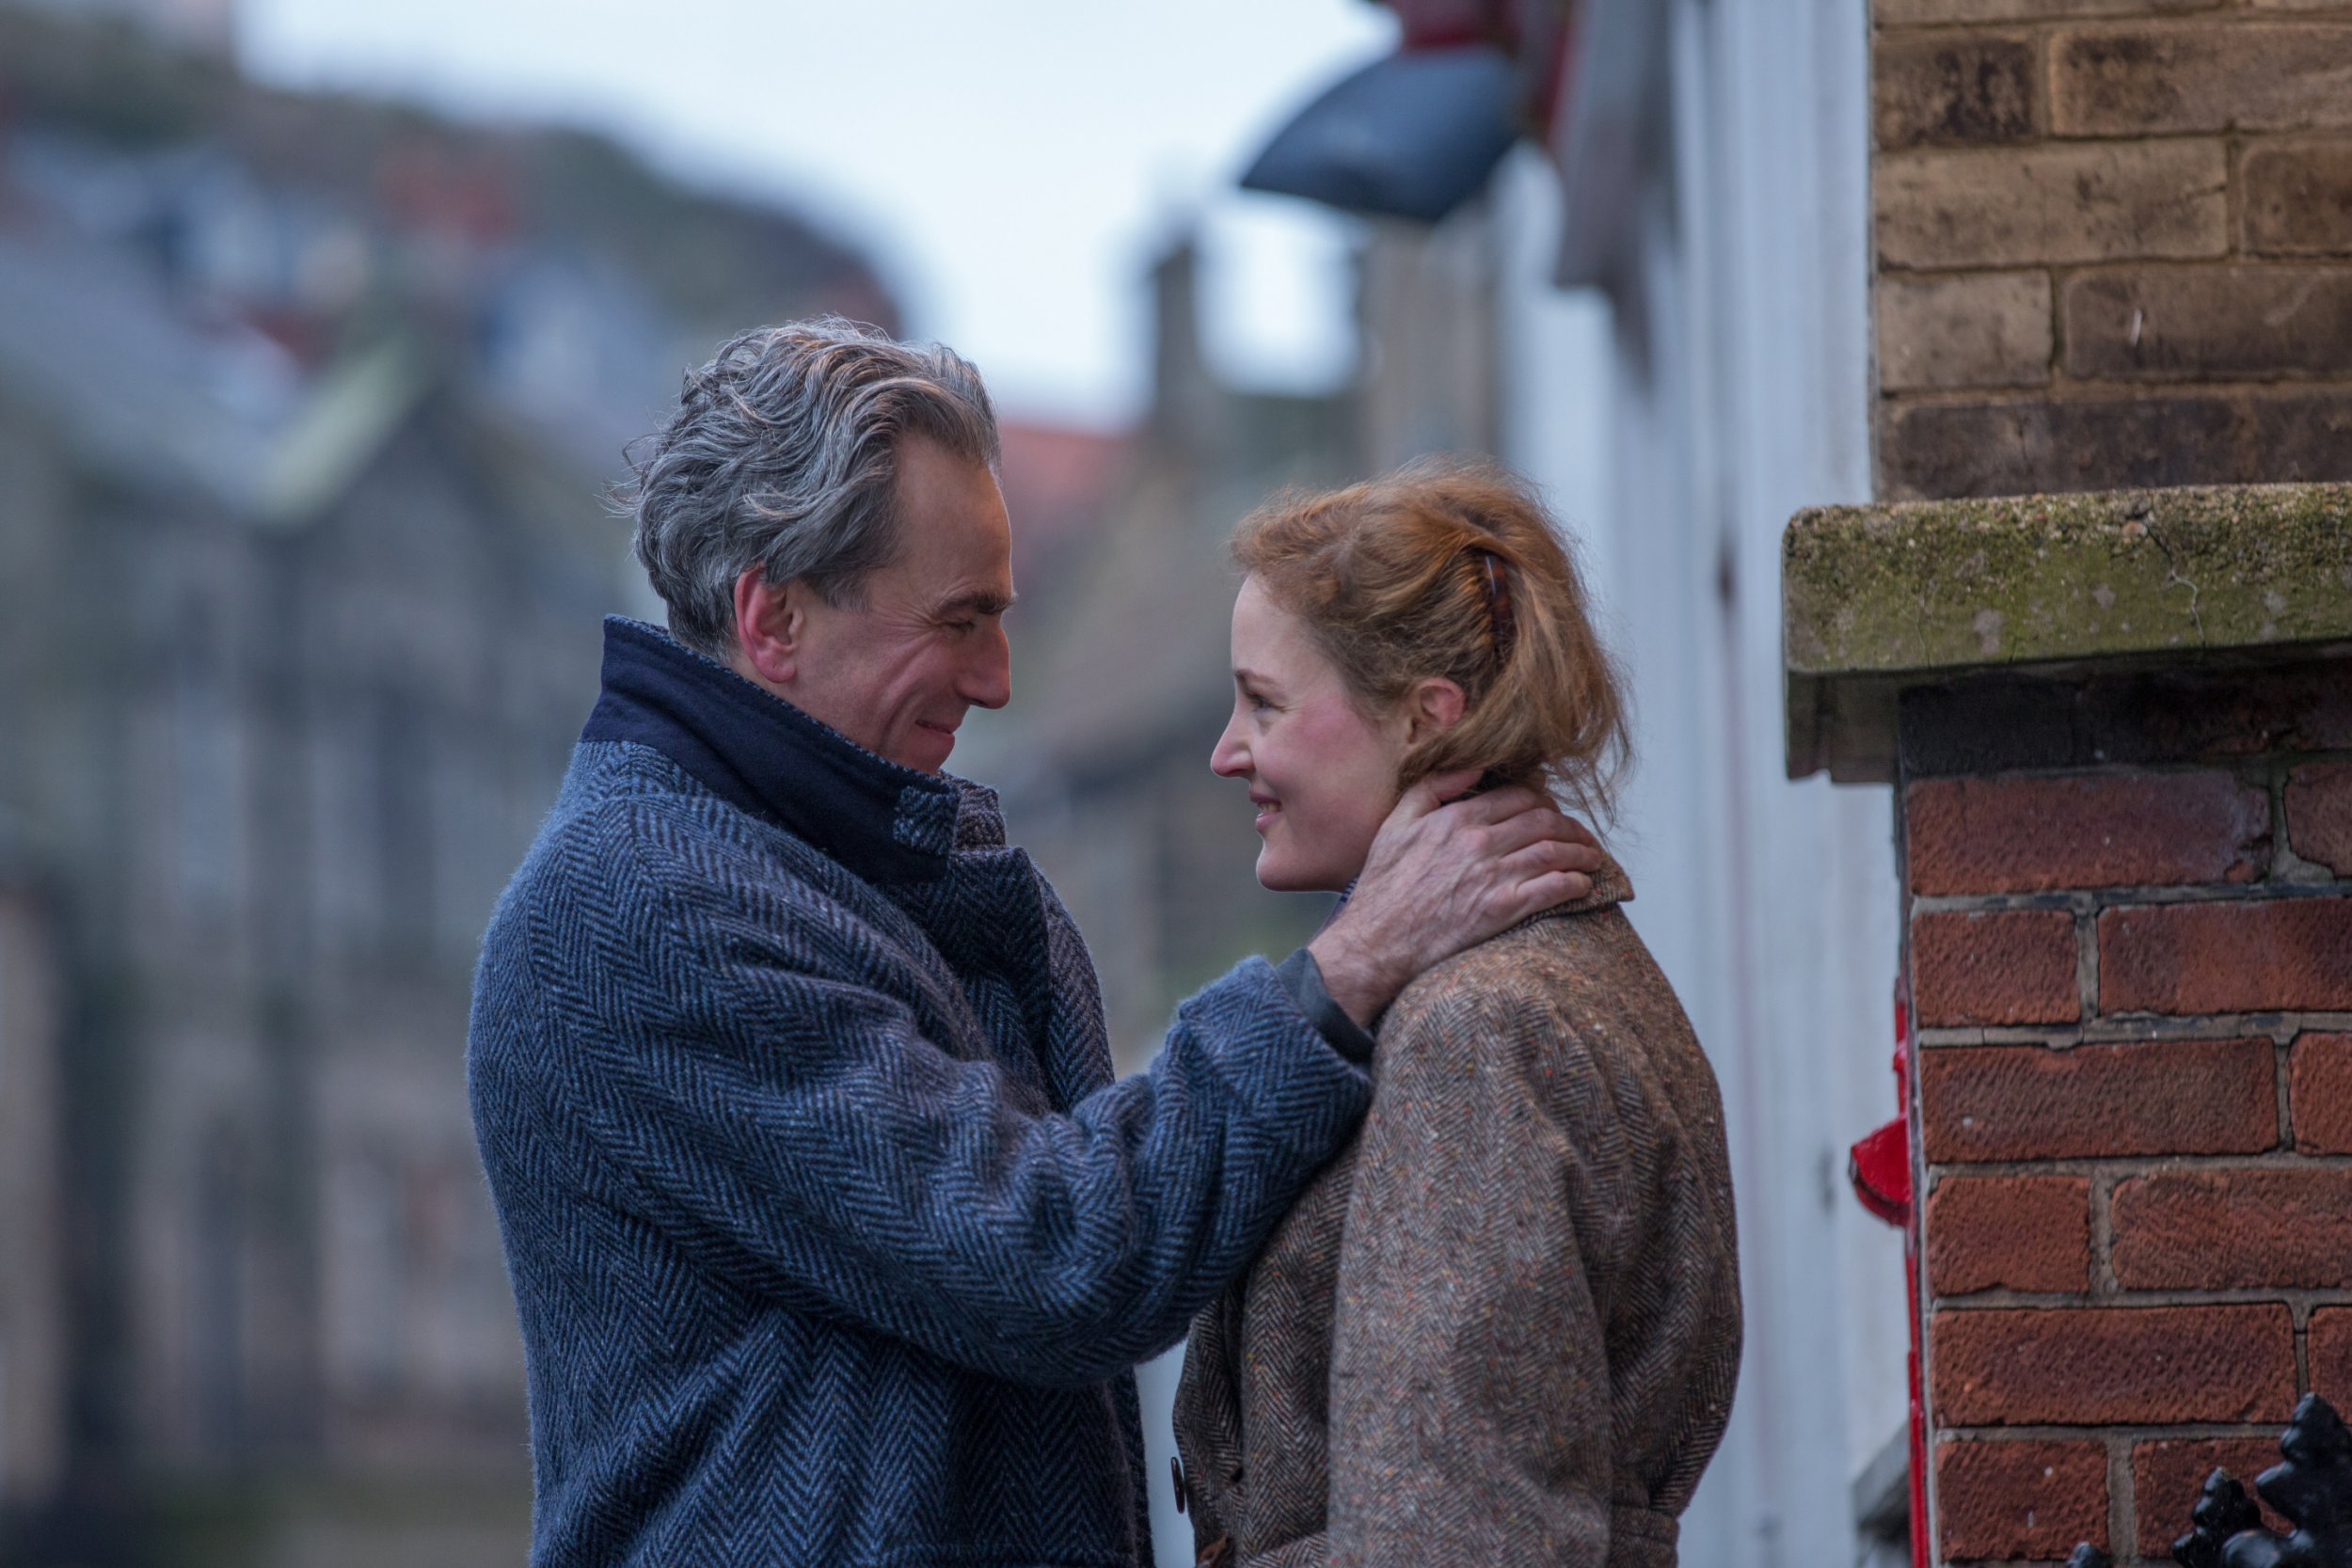 Phantom Thread Review: Daniel Day-Lewis goes out with a bang in Paul Thomas Anderson's masterpiece